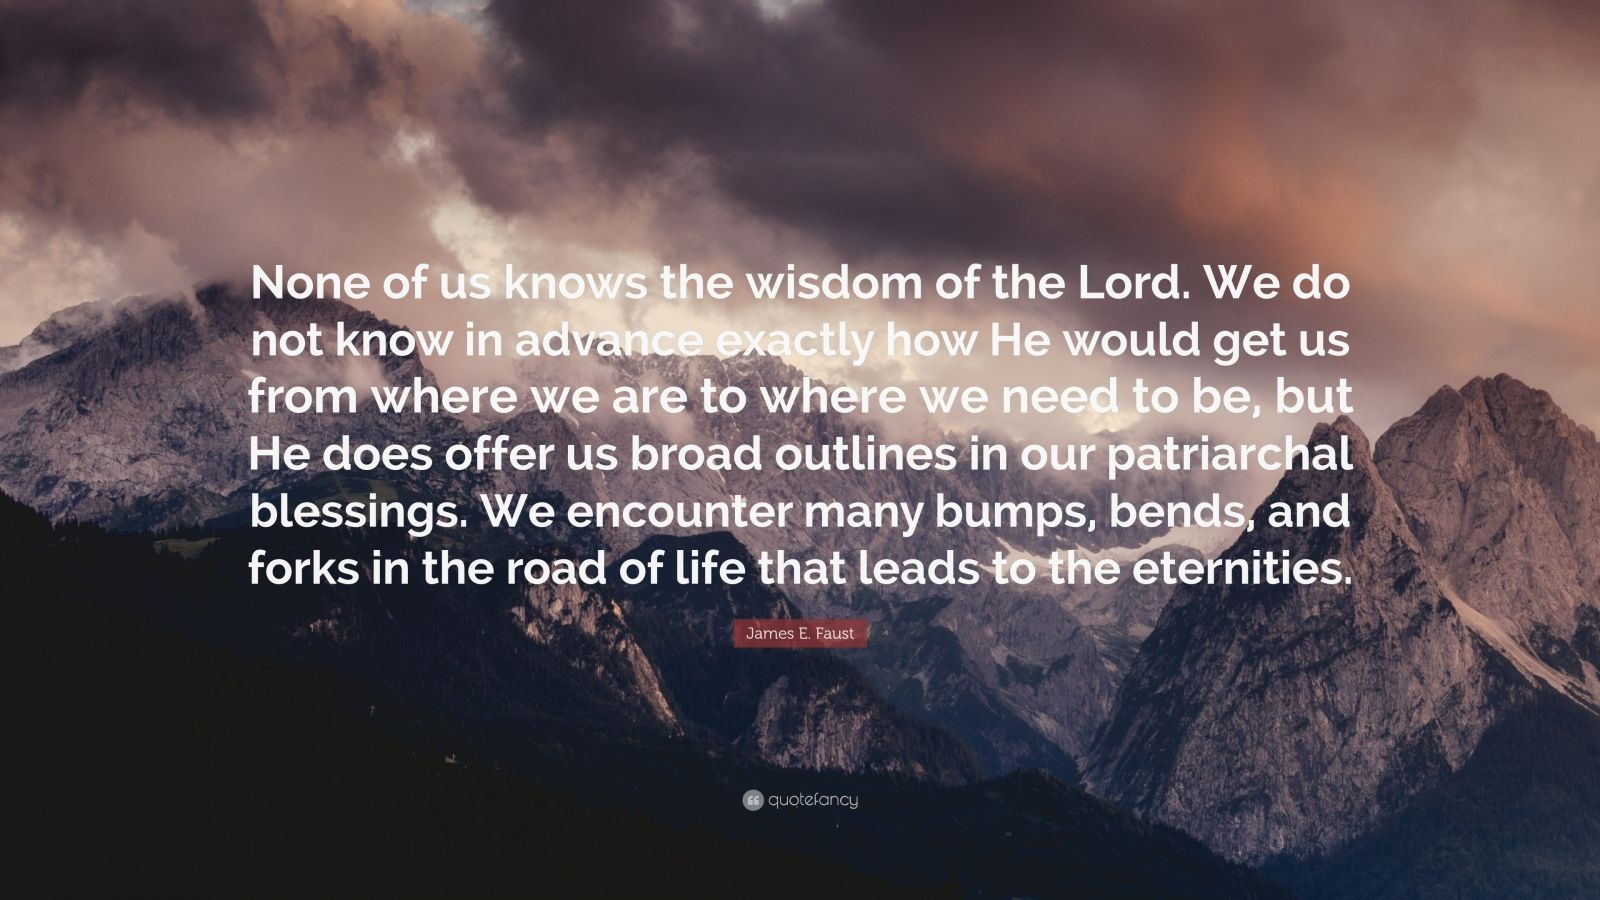 """James E. Faust Quote: """"None of us knows the wisdom of the Lord. We do not know in advance exactly how He would get us from where we are to where we need to be, but He does offer us broad outlines in our patriarchal blessings. We encounter many bumps, bends, and forks in the road of life that leads to the eternities."""""""